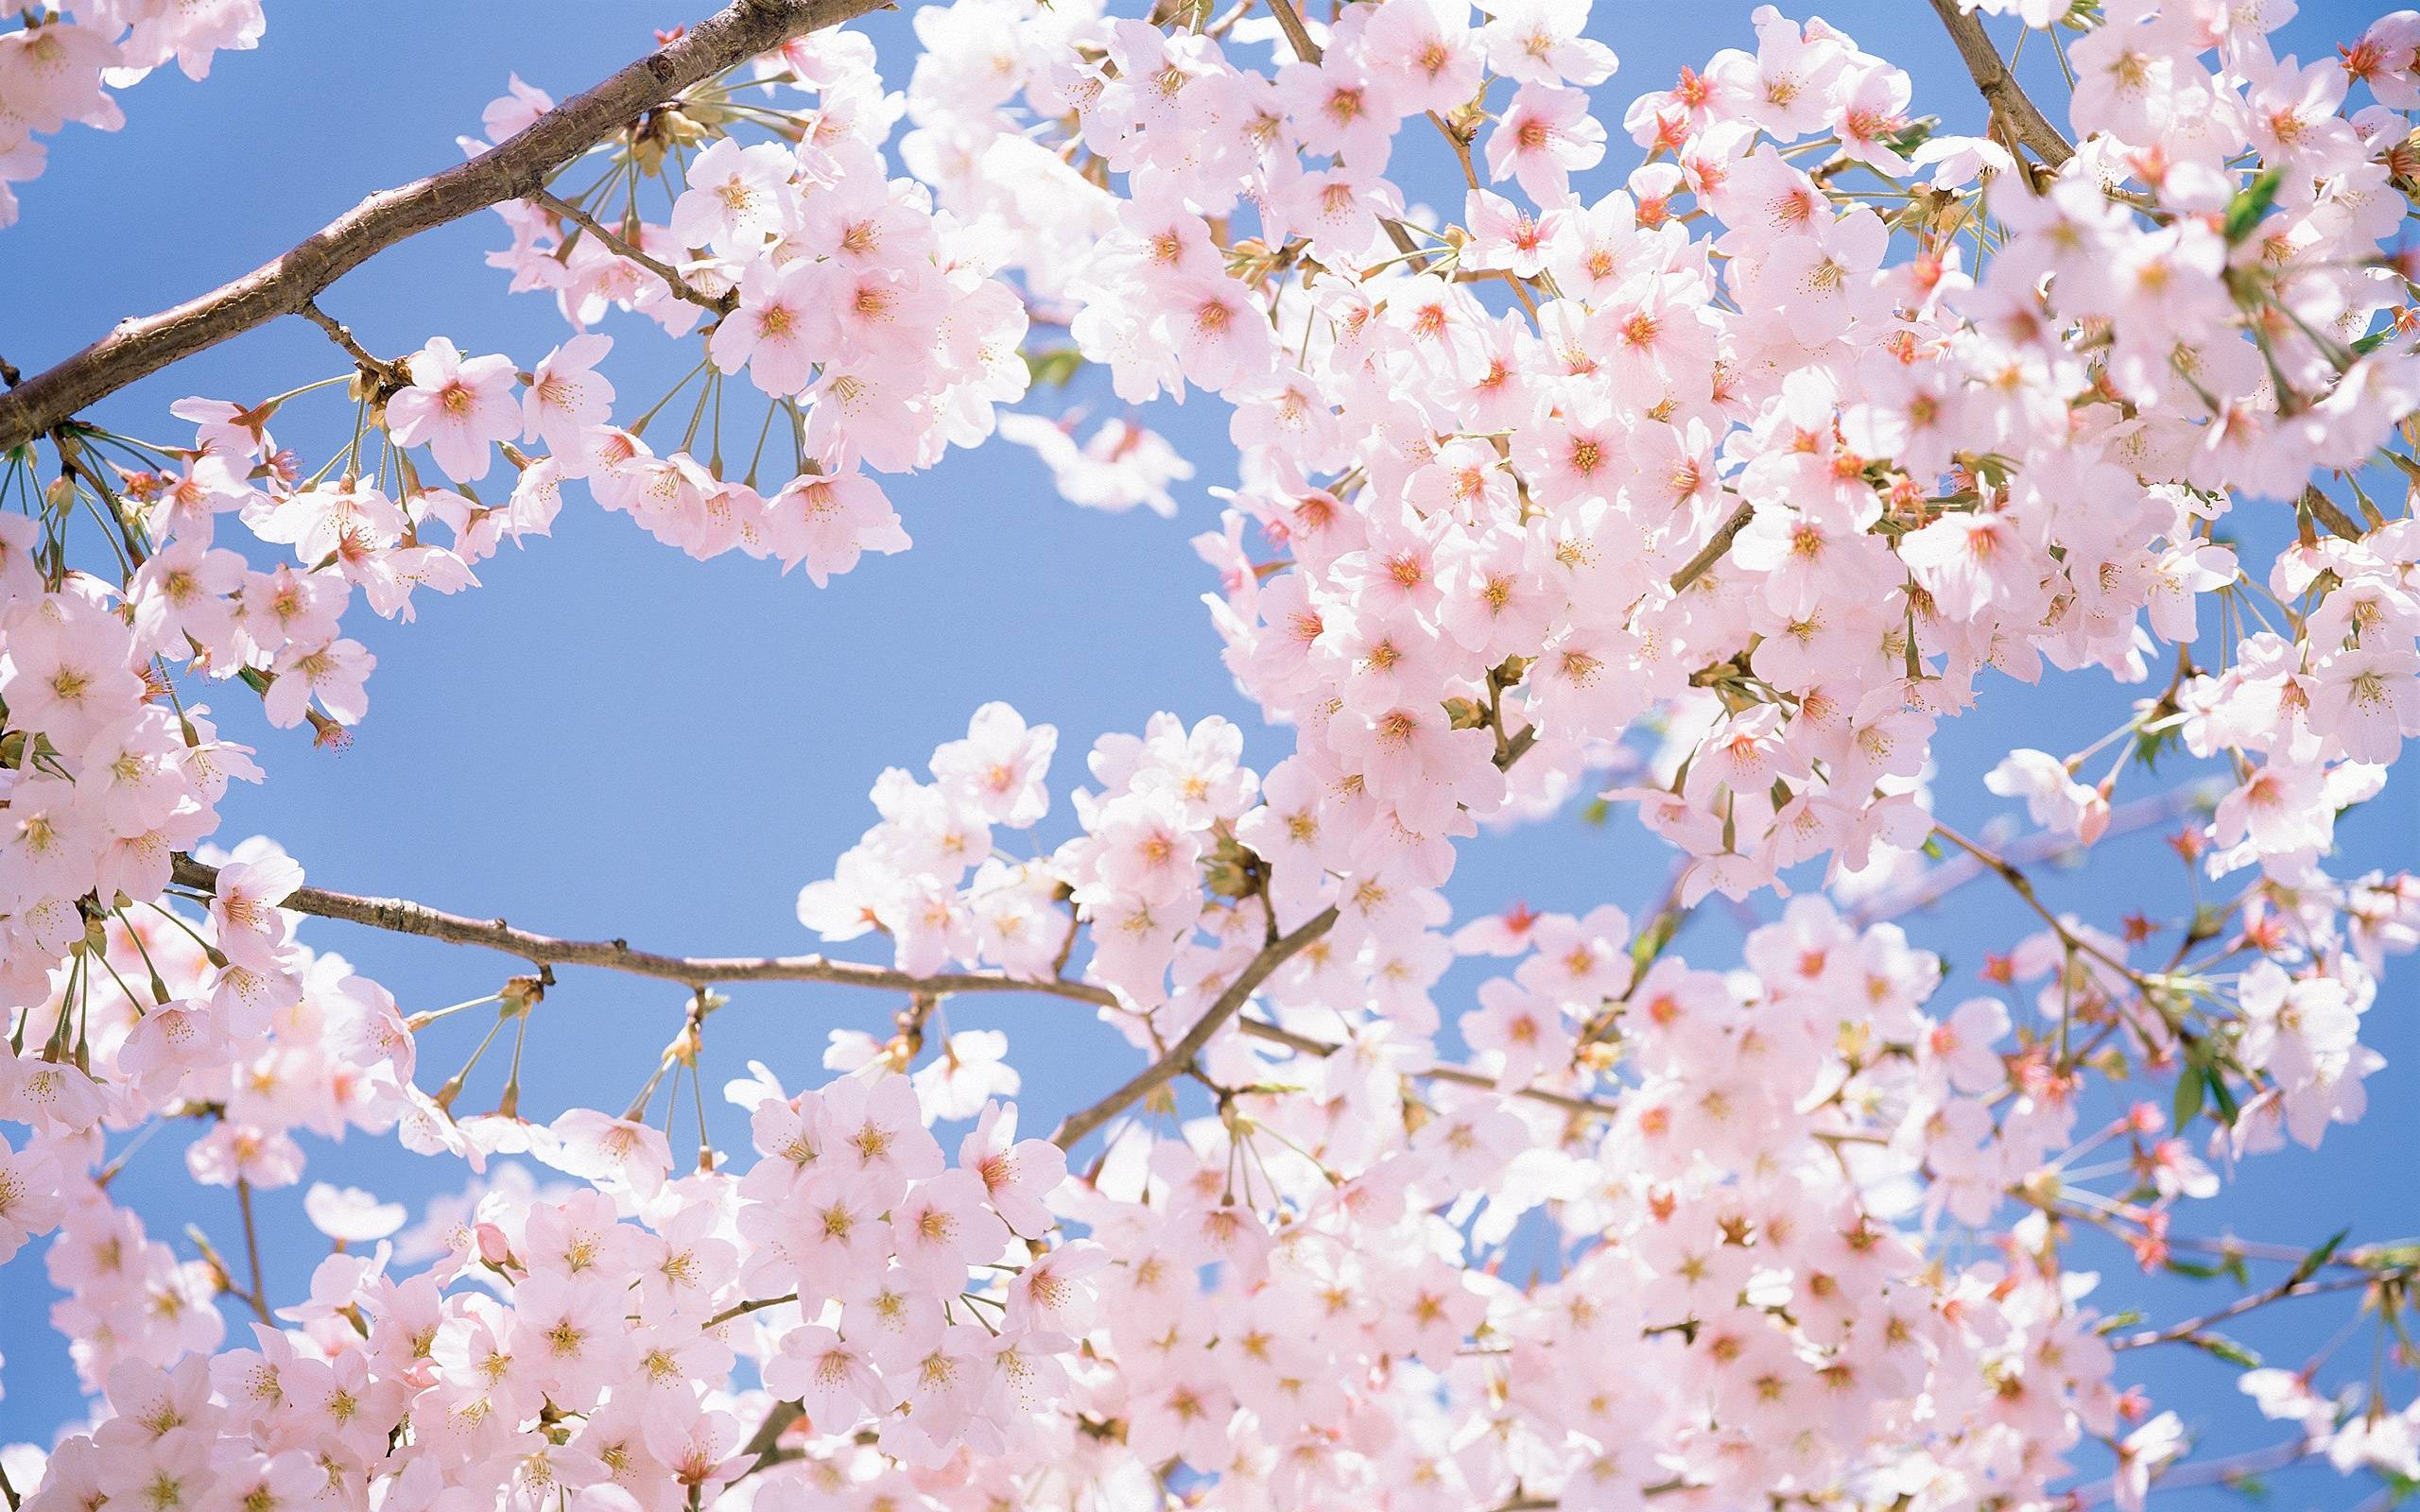 Wallpapers Cherry Blossom Cherry Blossom Tree Wallpaper 06 2560x1600